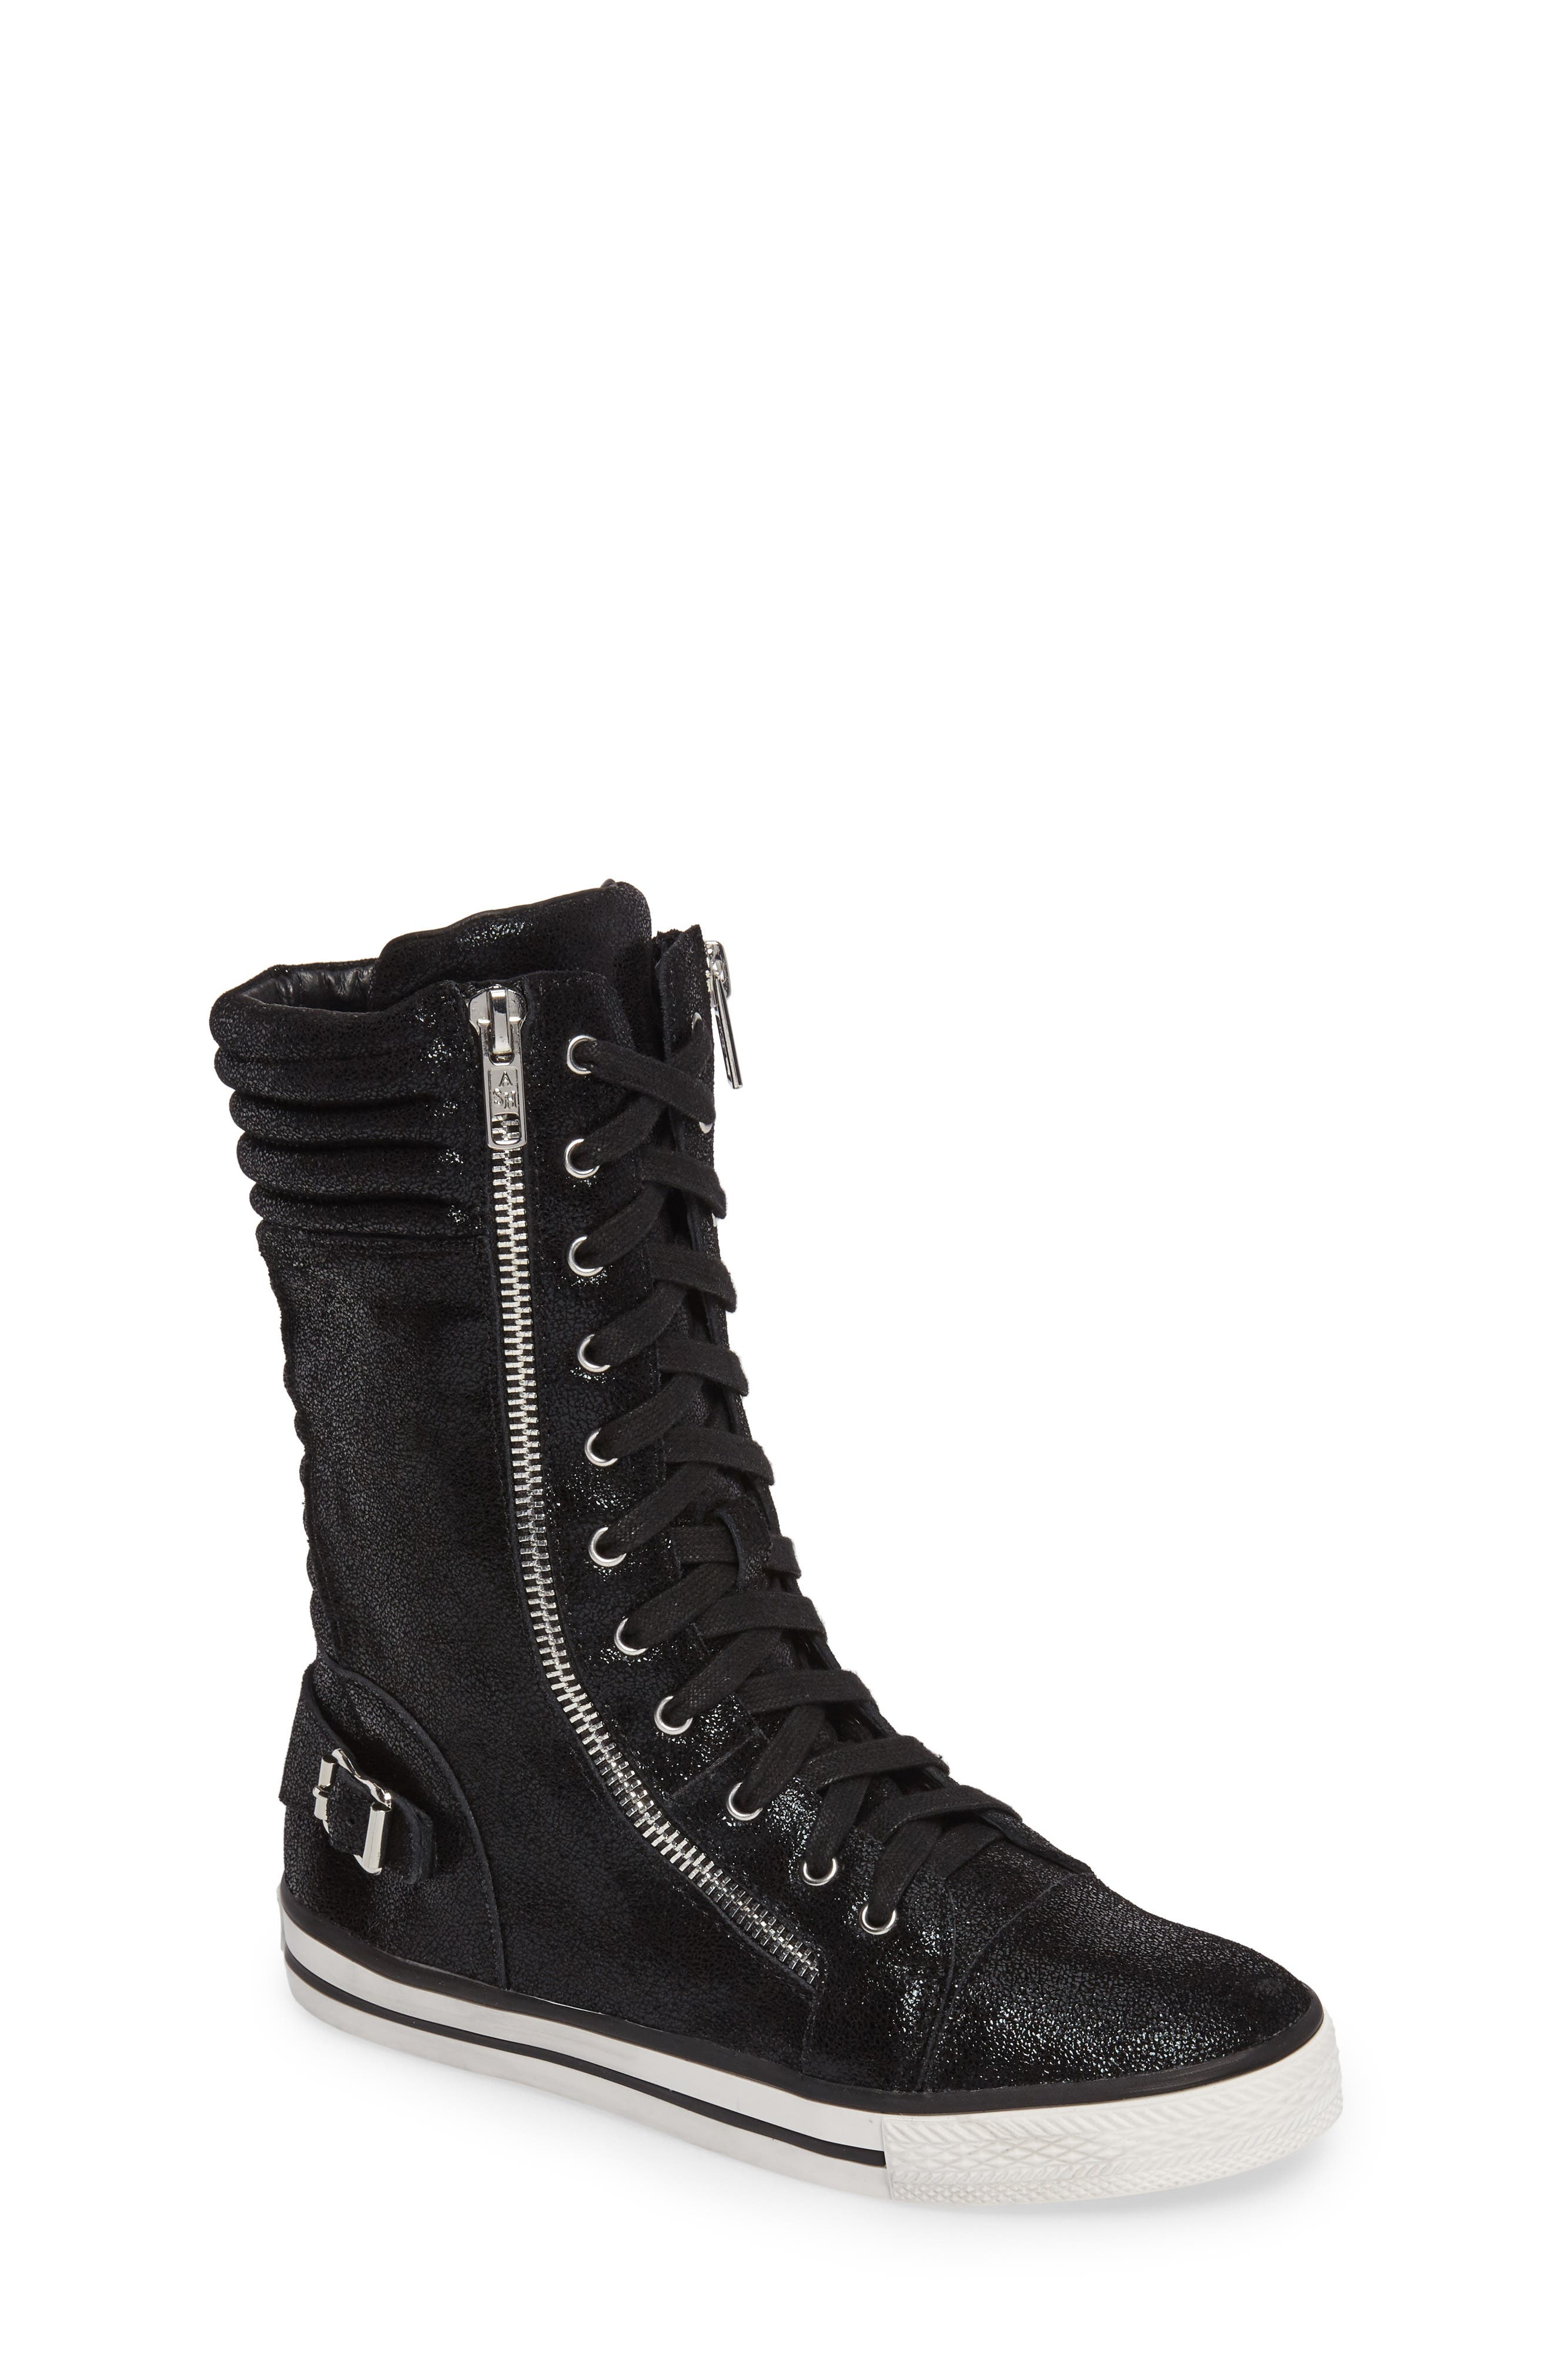 Vava Cate Ultra High Top Sneaker,                         Main,                         color, 001